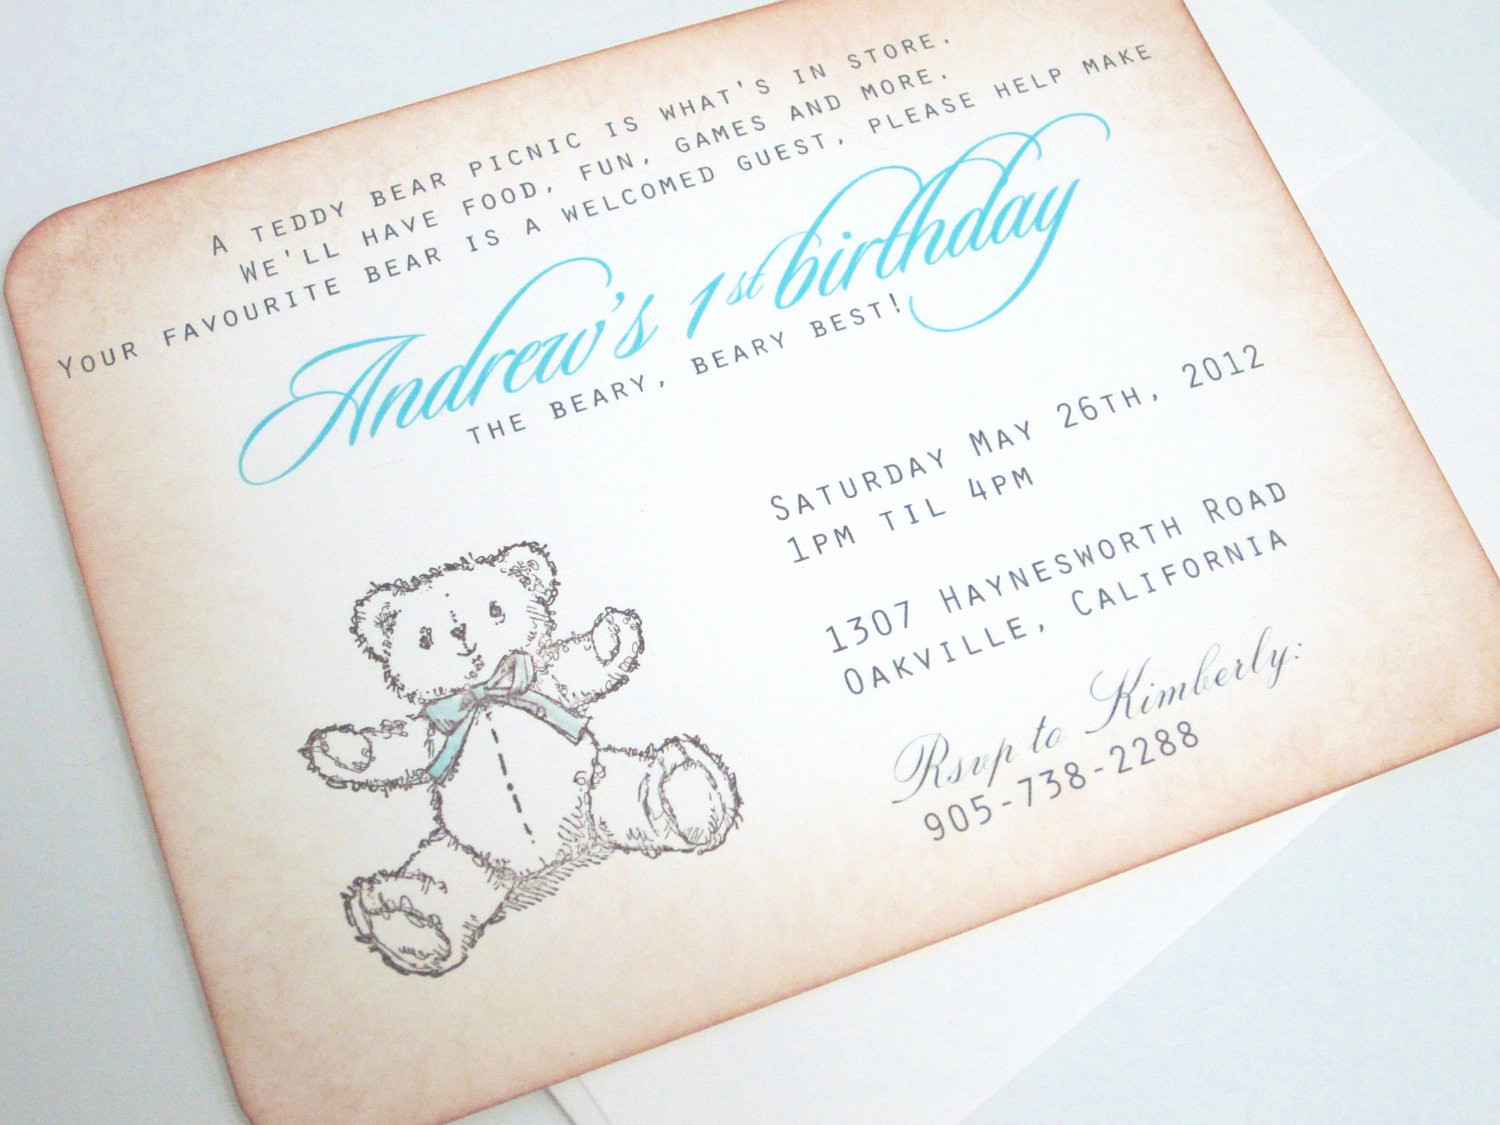 Teddy Bears Picnic Invitation Fresh Baby Shower Invitation Teddy Bear Picnic with by Anistadesigns